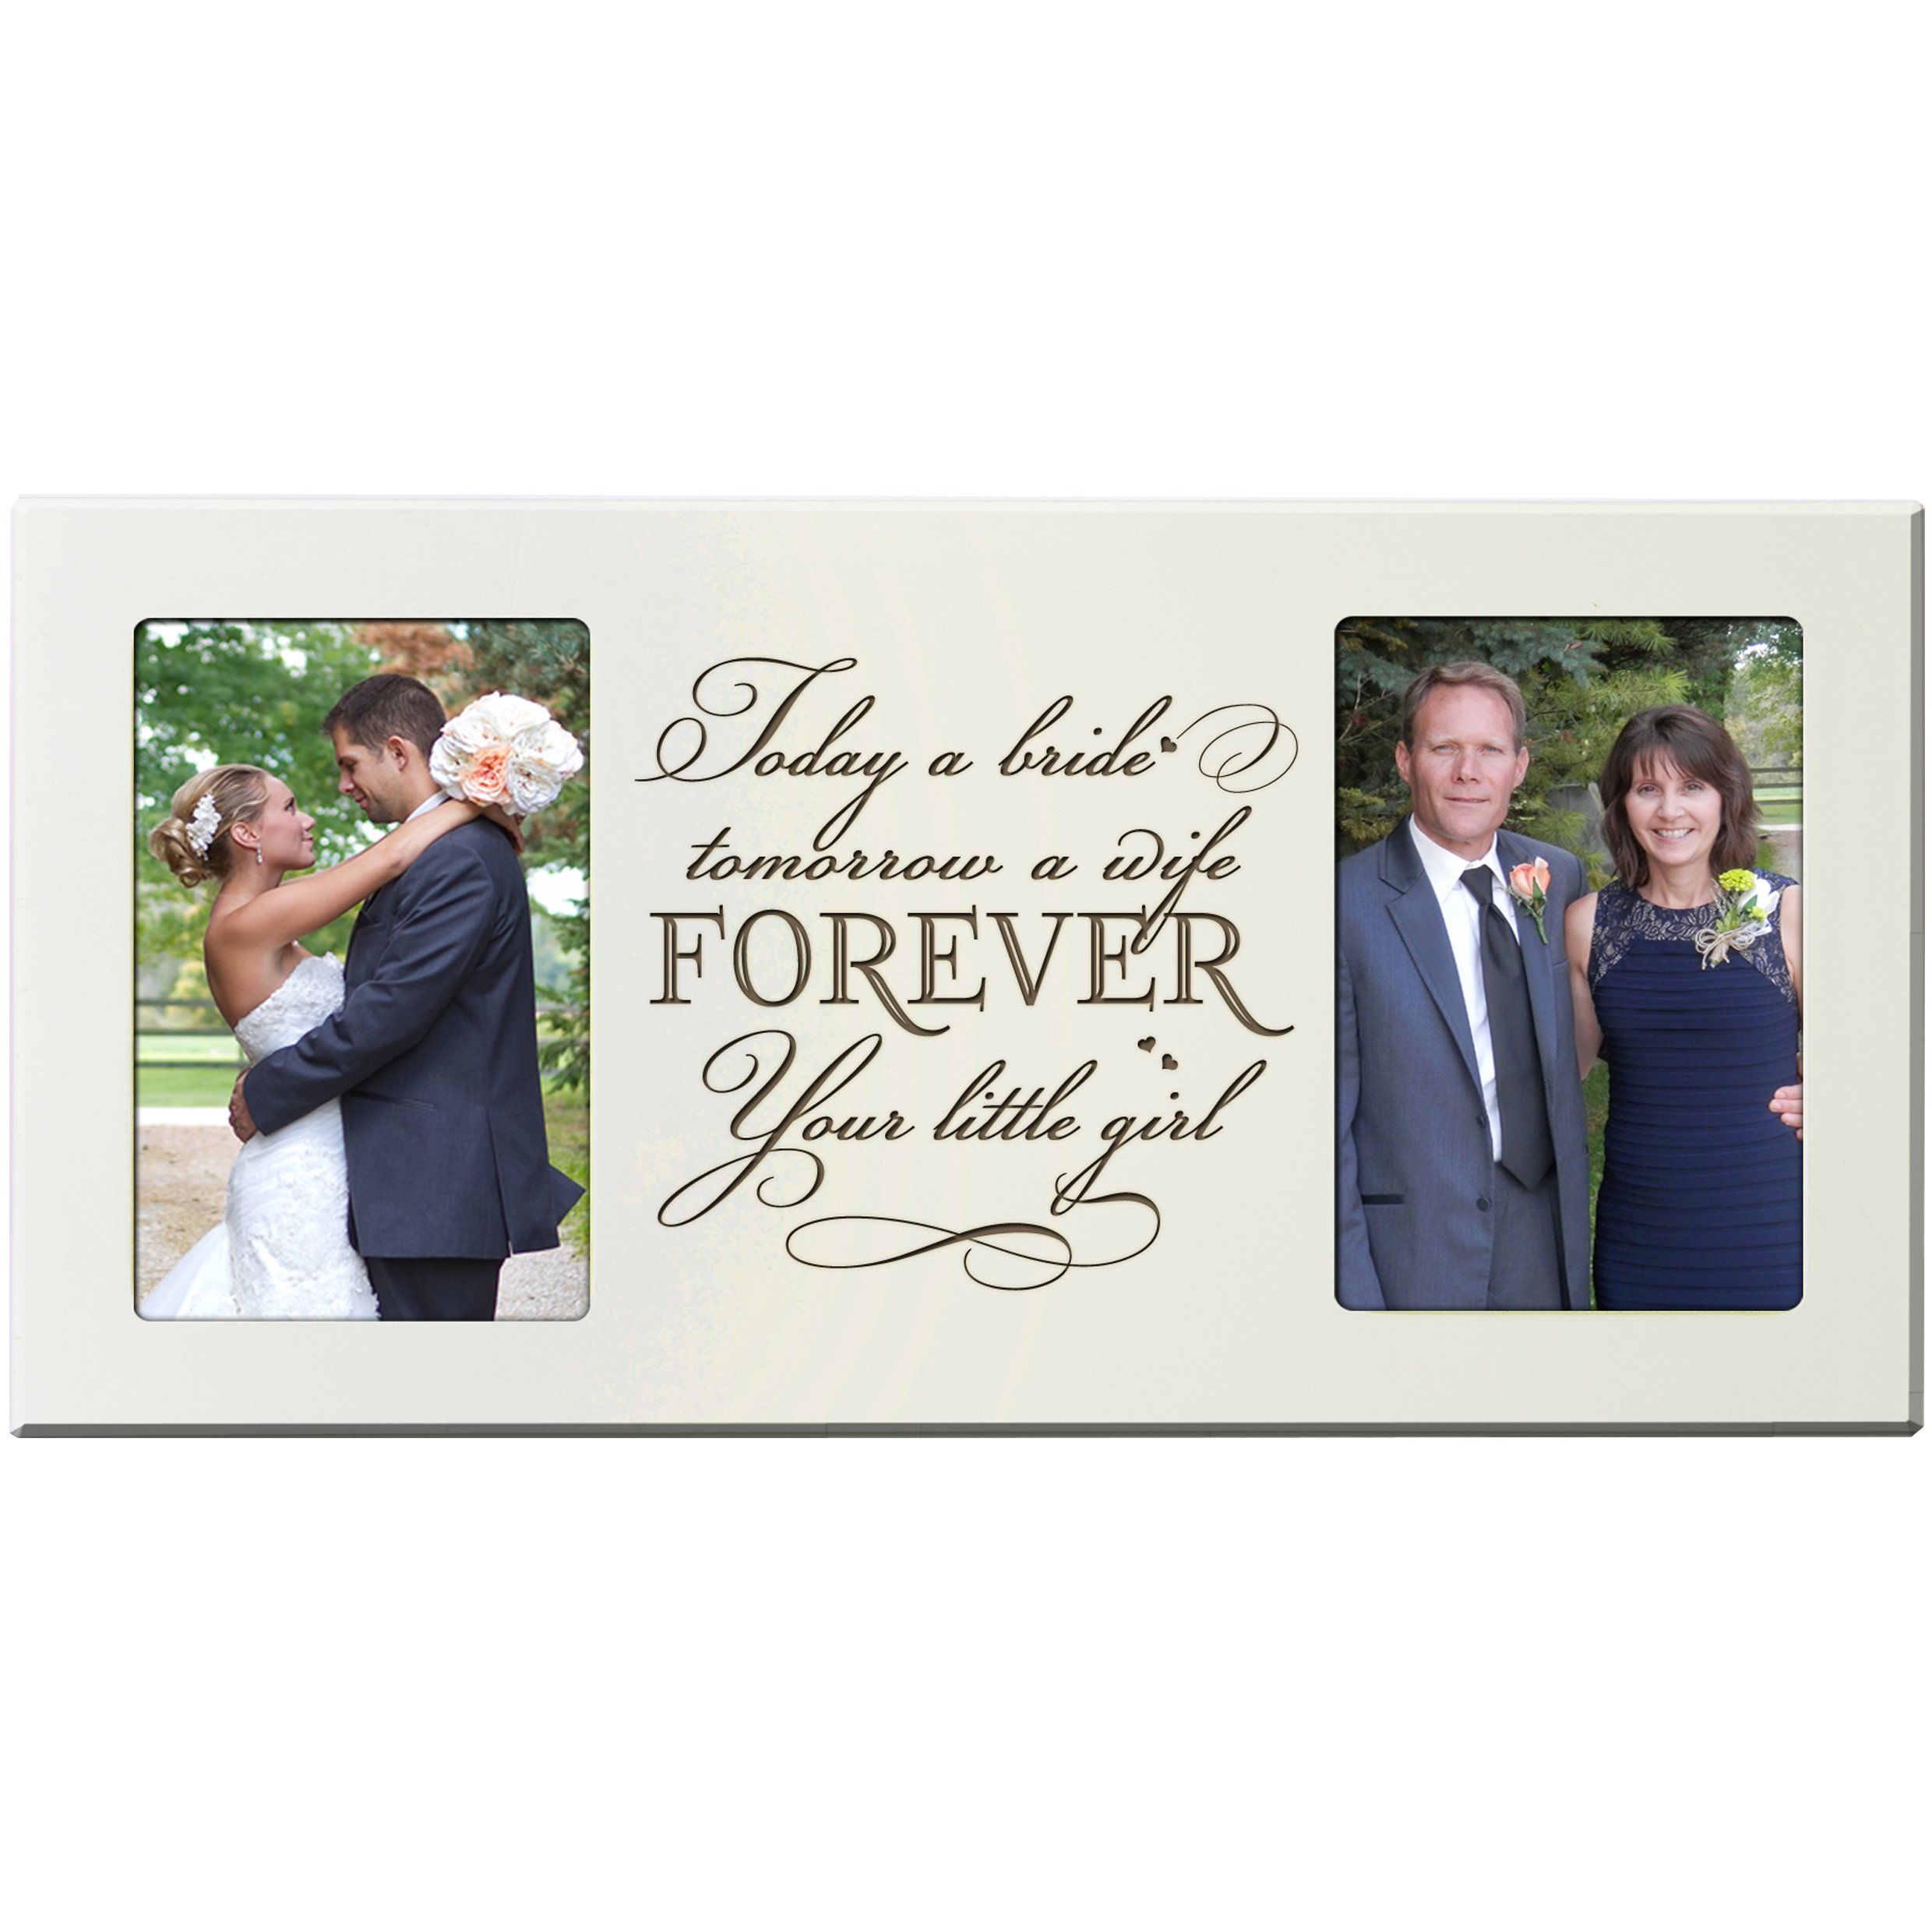 LifeSong Milestones Parent Wedding Gifts, Picture Frame for Bride and Groom Mom and Dad Today a Bride Tomorrow a Wife Forever Your Little Girl 16'' L X 8'' holds 2 4x6 photos from (Ivory)